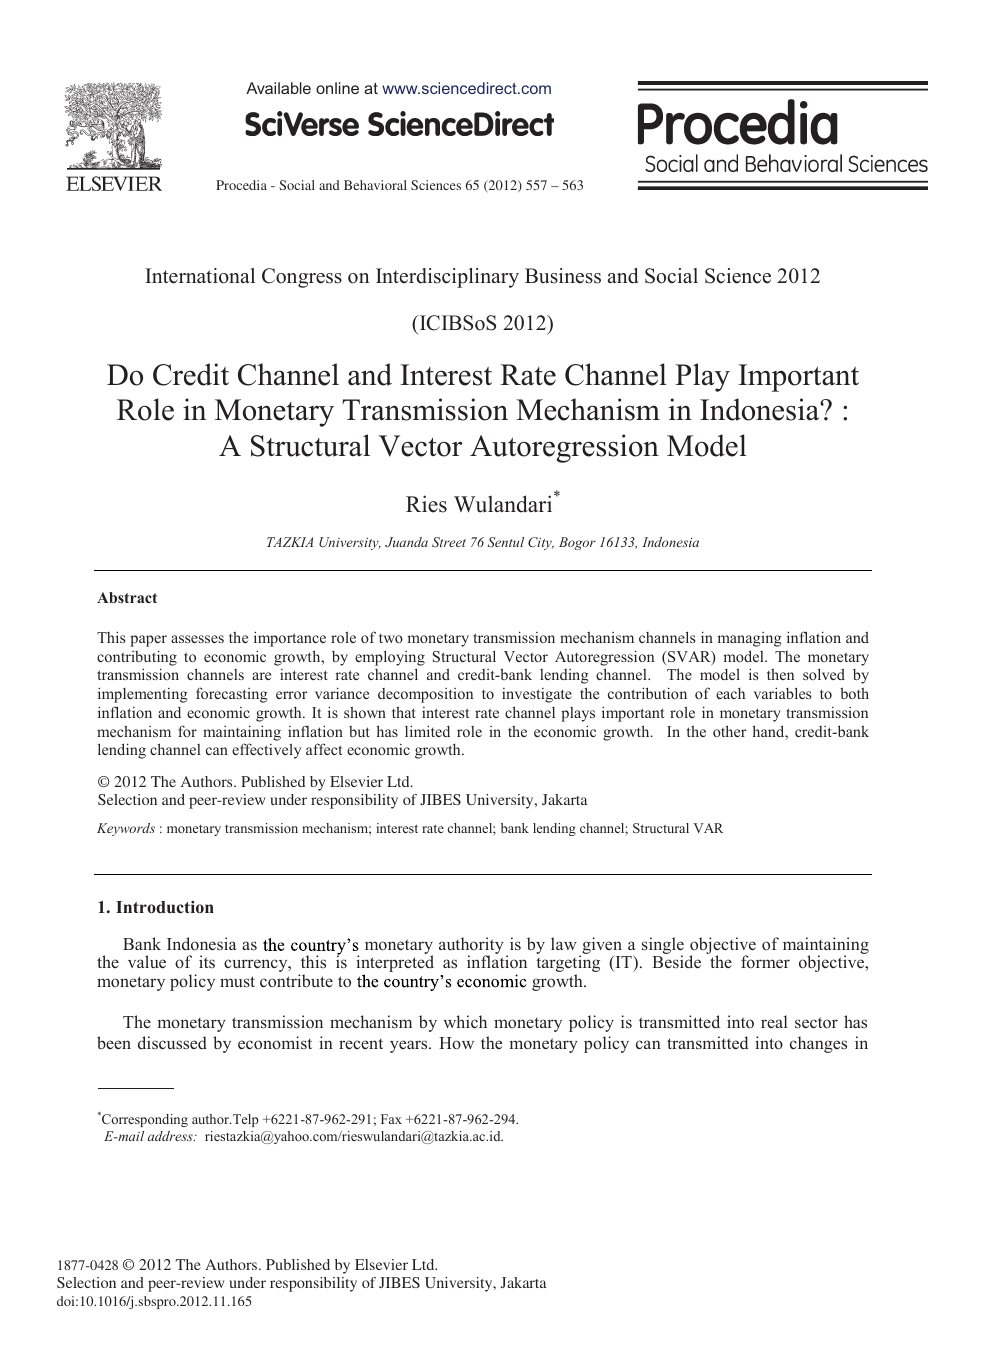 Do Credit Channel and Interest Rate Channel Play Important